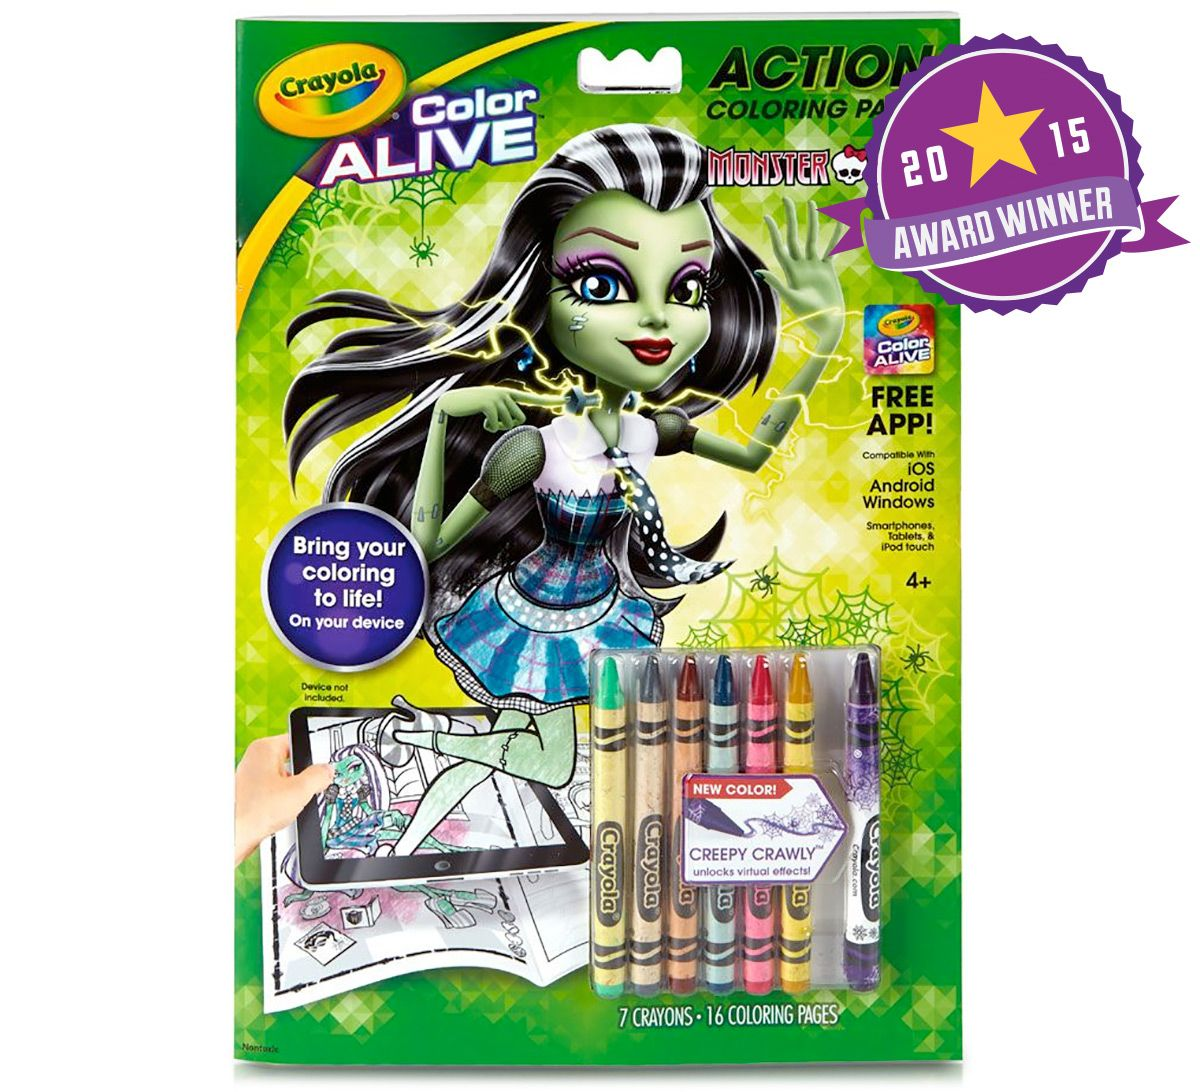 new crayola colors for 2015 with their new color alive product